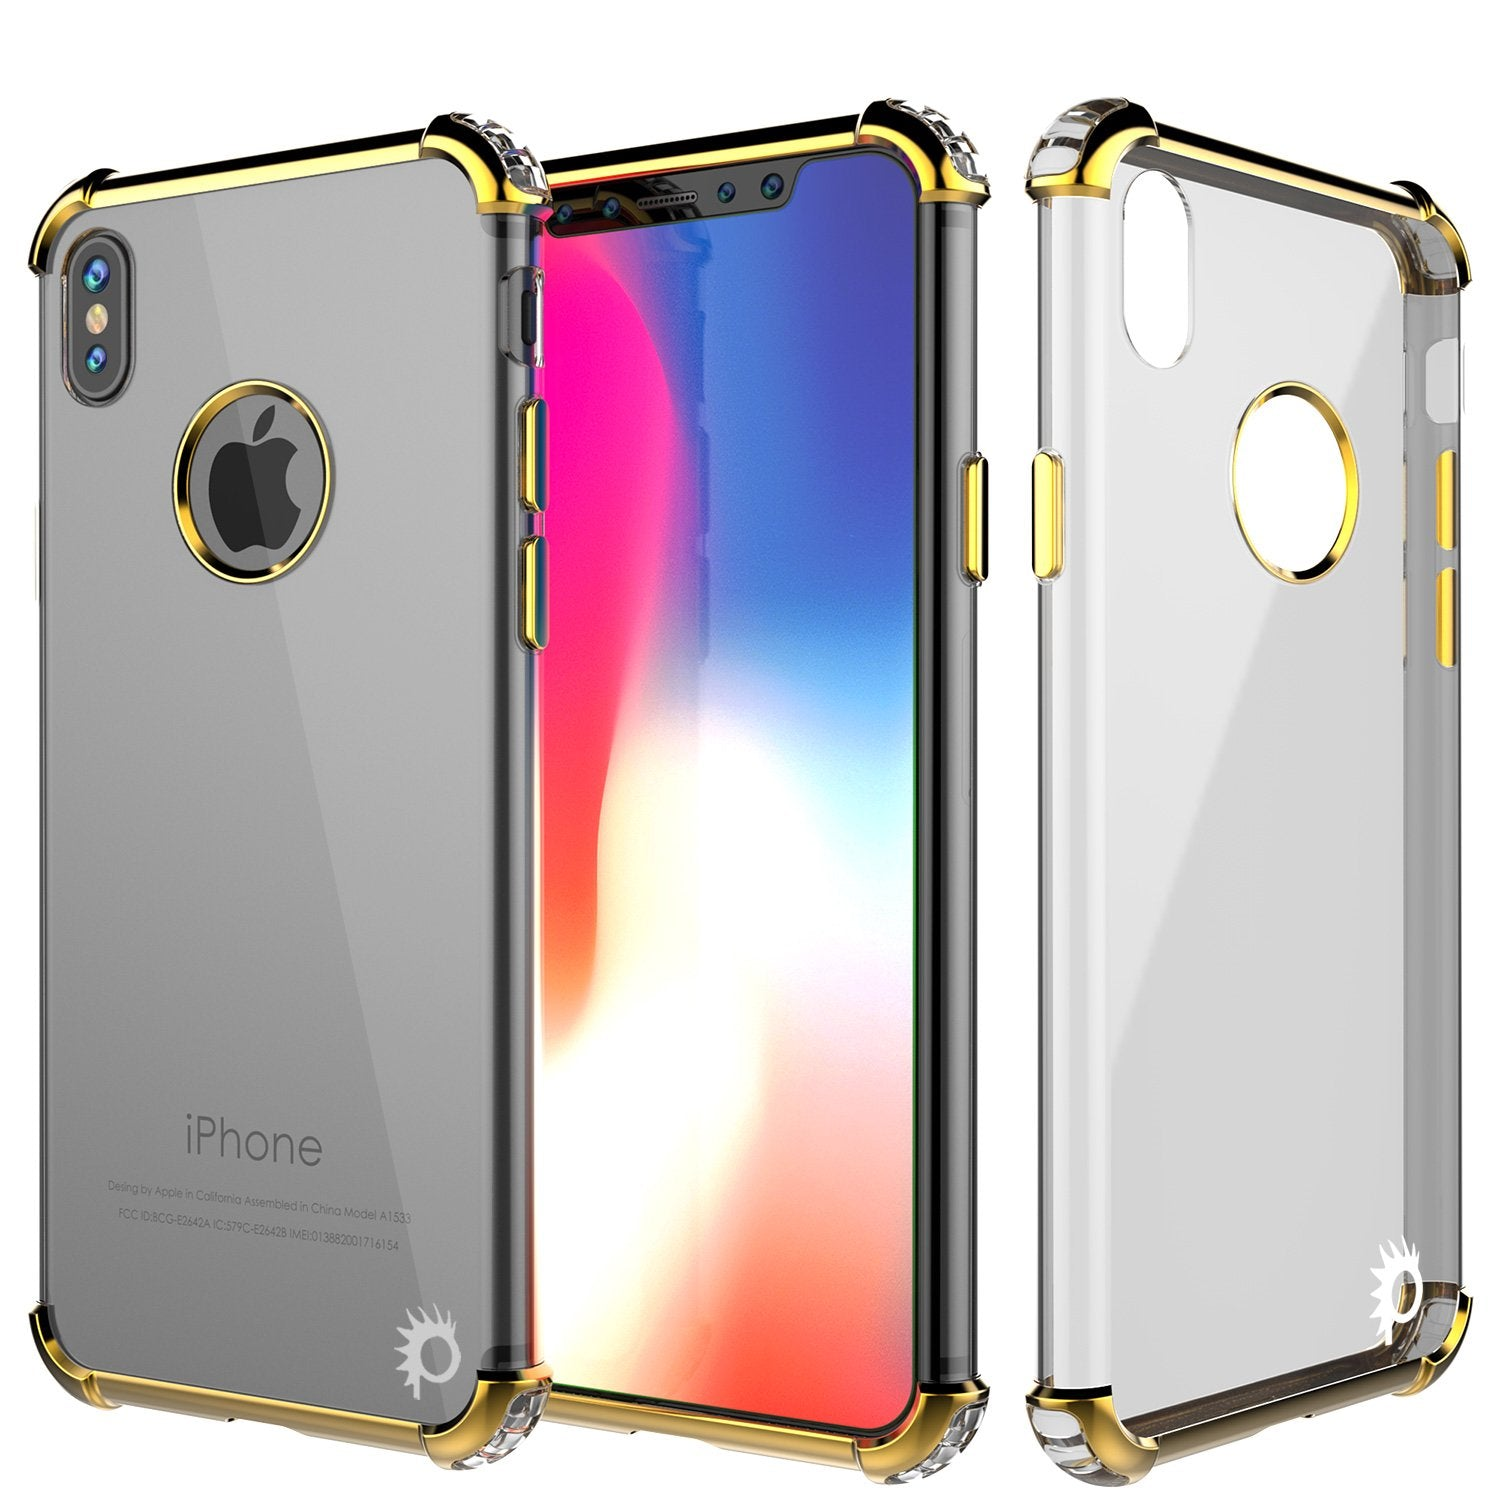 iPhone X Punkcase [BLAZE SERIES] Cover W/ Screen Protector [Gold]